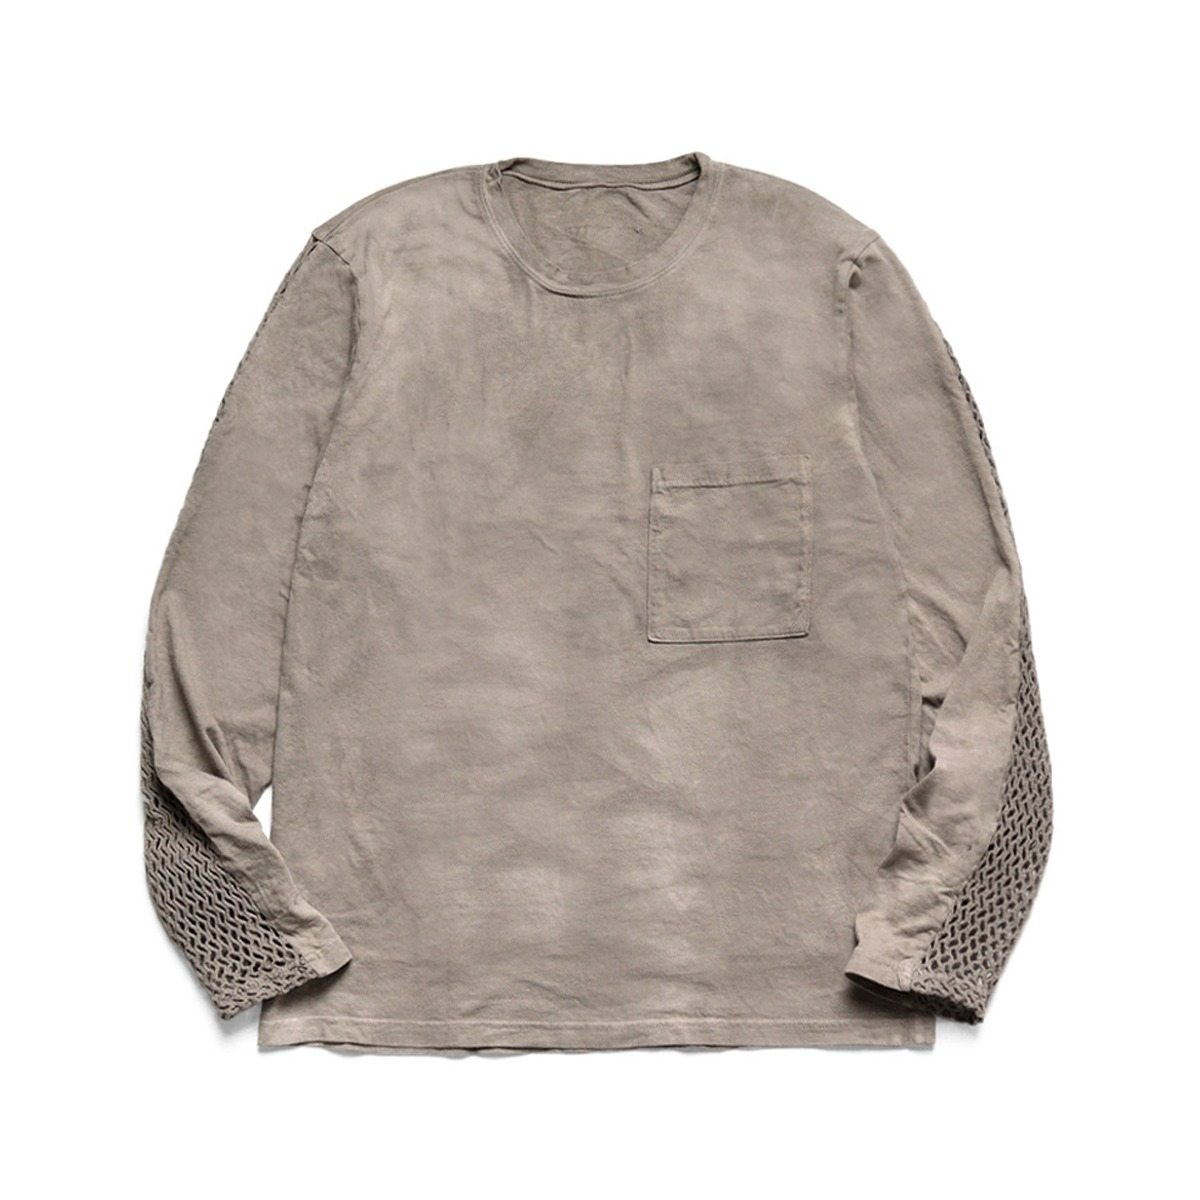 [KAPITAL] 20/-JERSEY KATABIRA LONG SLEEVE T (BACK SLEEVE) 'GRAY'